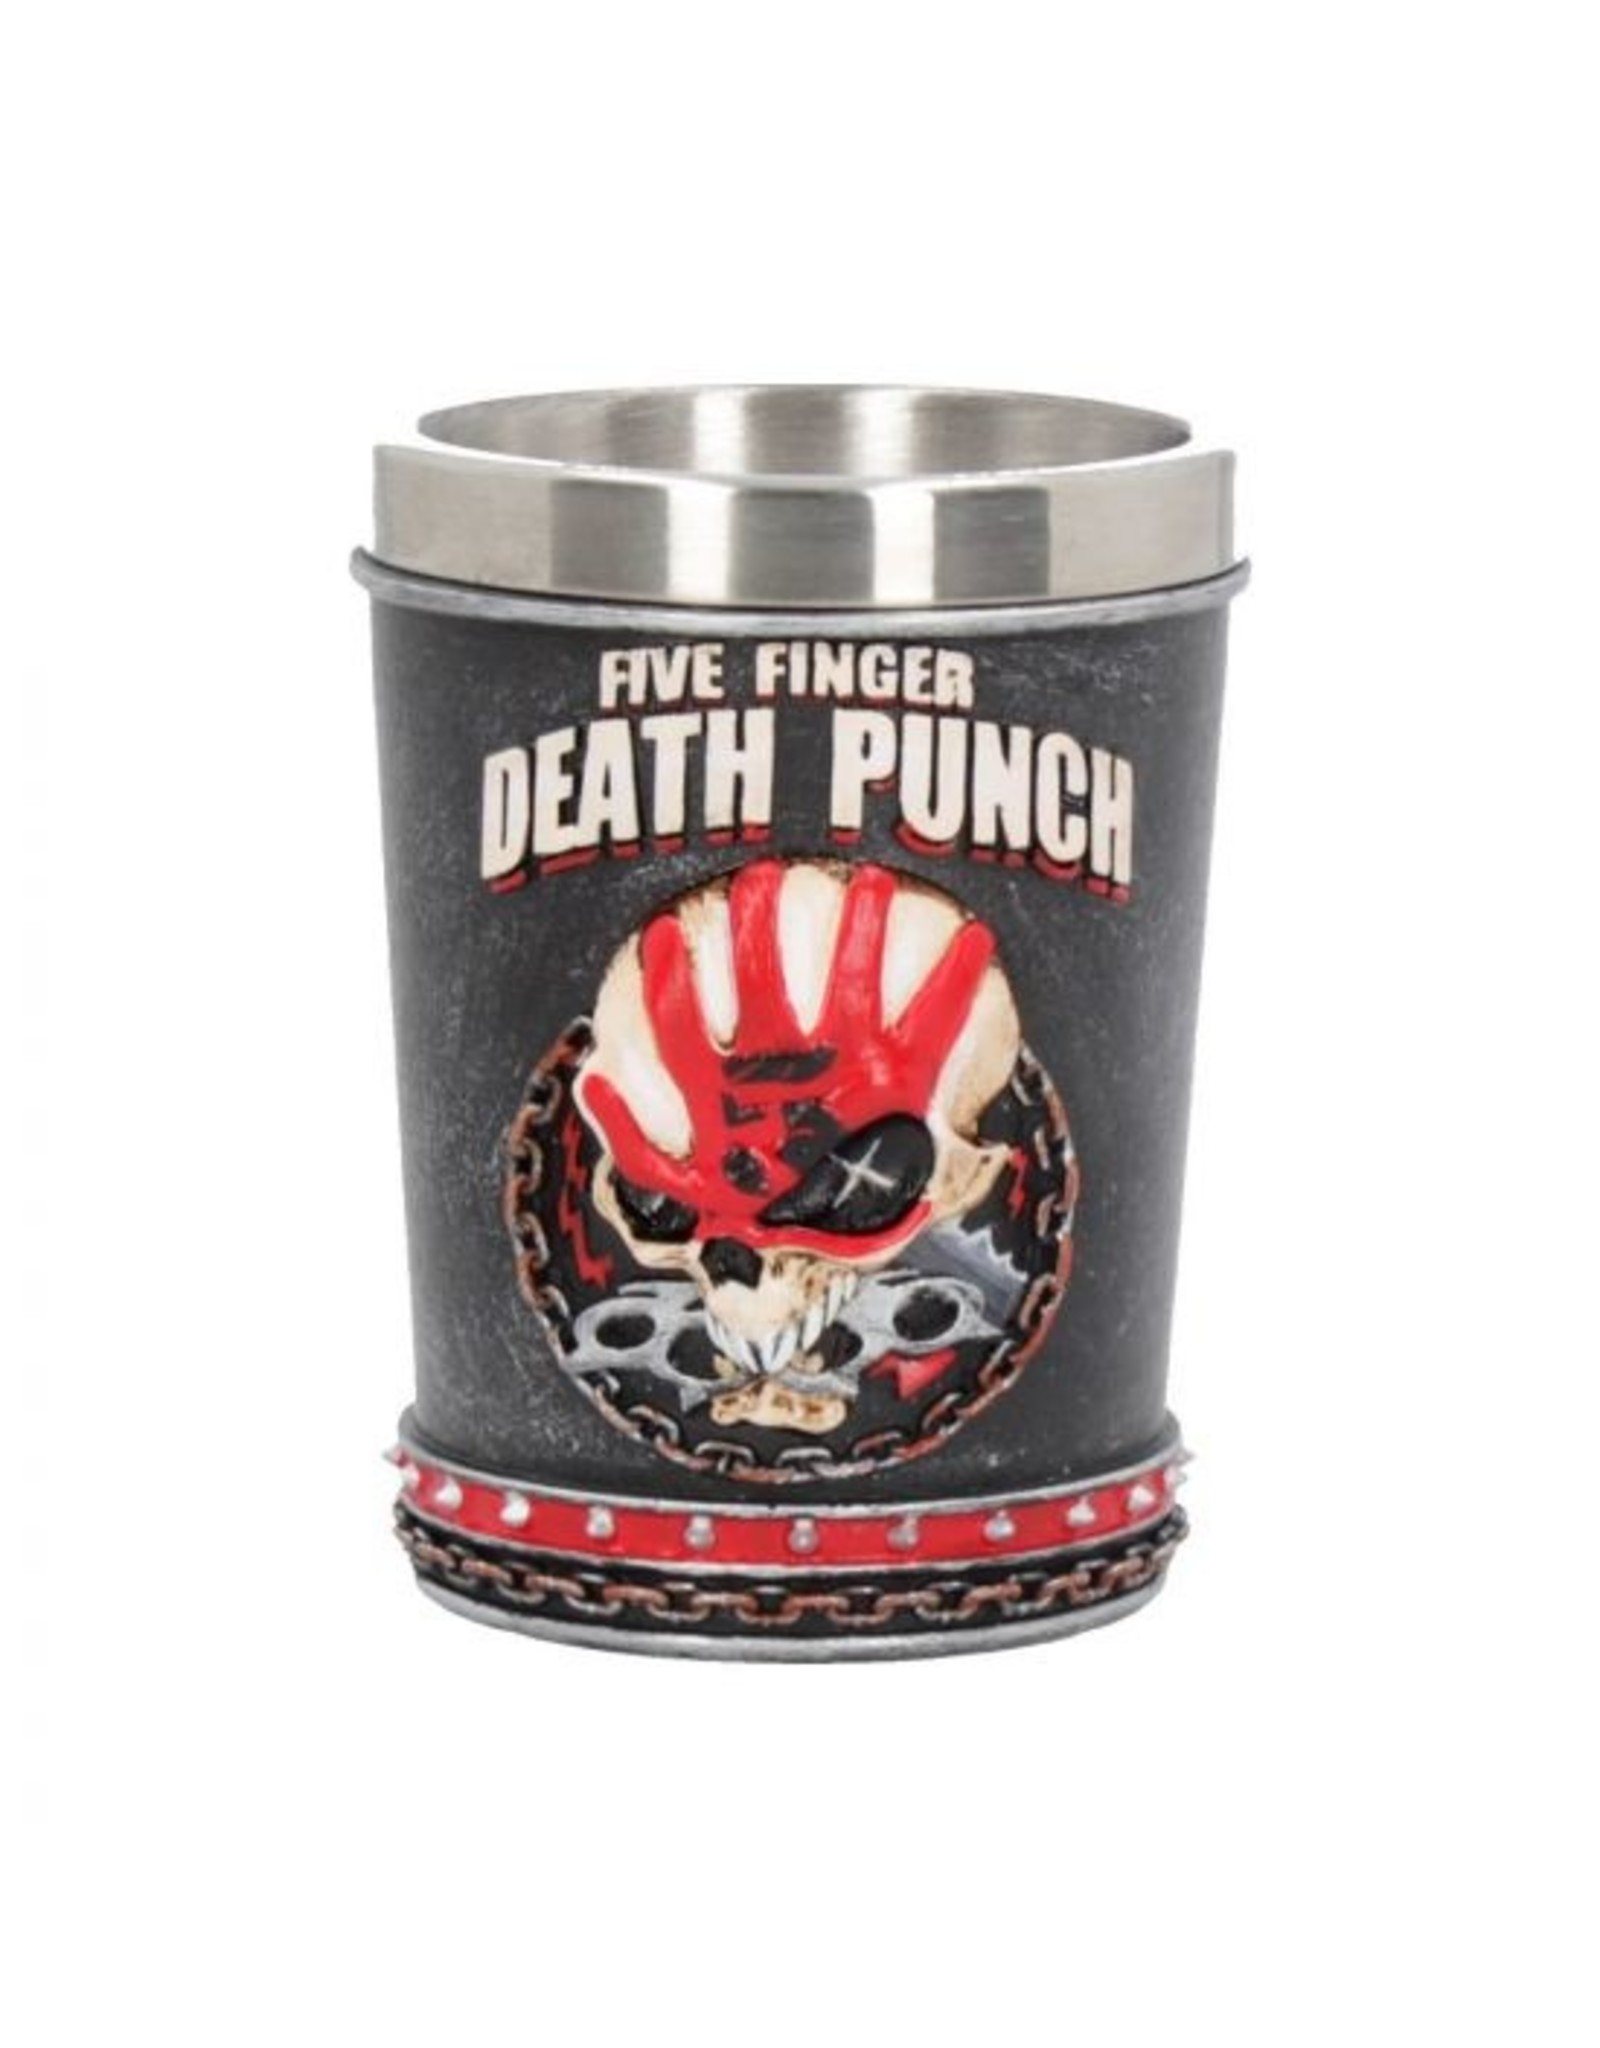 5FDP Five Finger Death Punch Schnapsbecher 7 cm